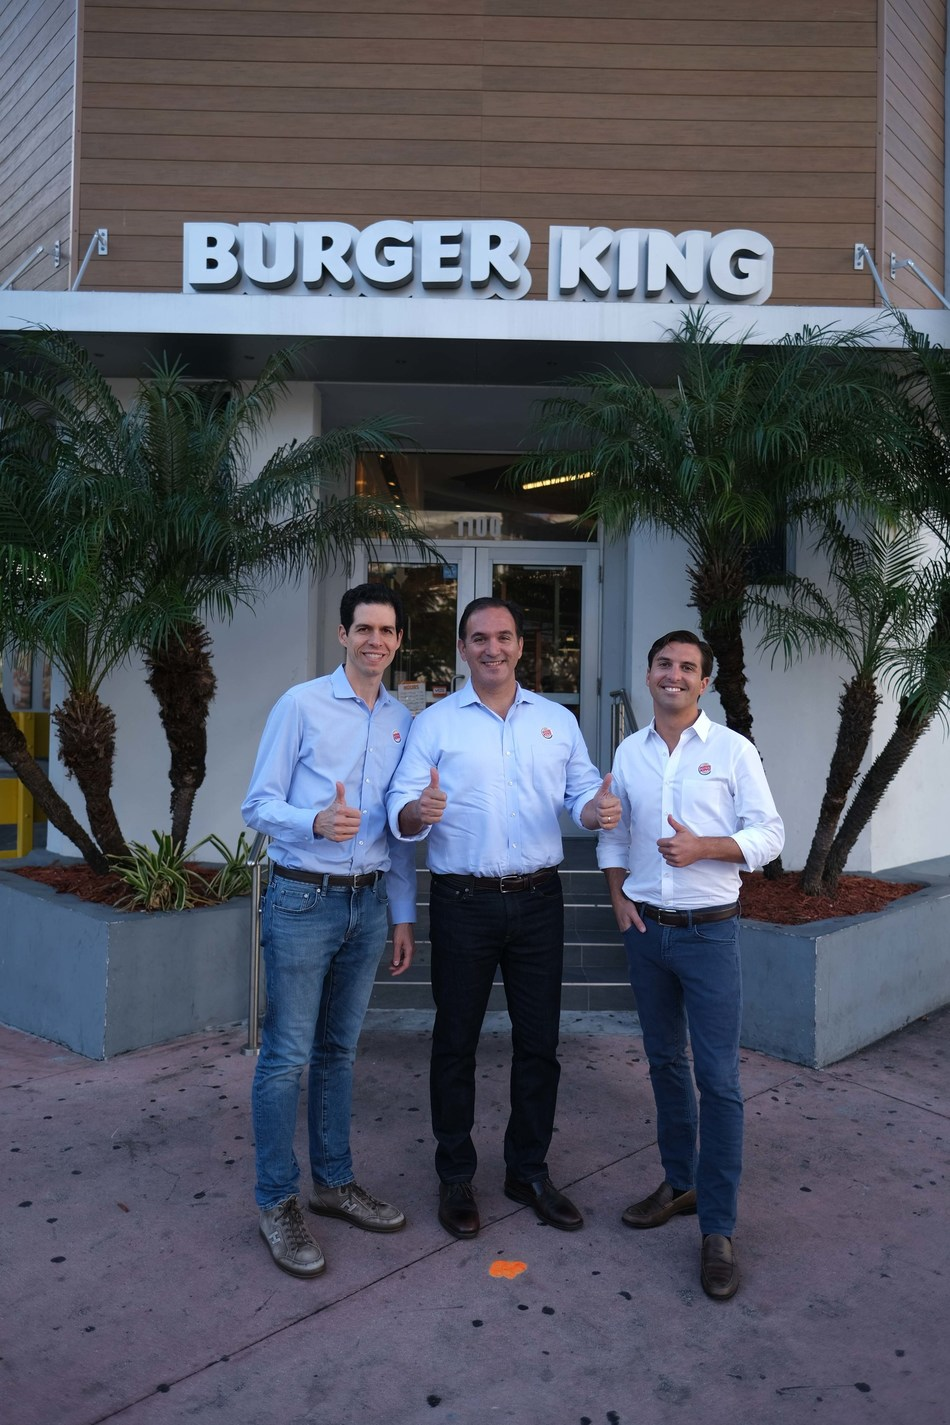 (L to R): Daniel Schwartz (Executive Chairman of RBI and co-Chairman of RBI's Board of Directors), Jose Cil (CEO of RBI) and Josh Kobza (COO of RBI) visit a Burger King restaurant in South Beach, Miami. (CNW Group/Restaurant Brands International Inc.)